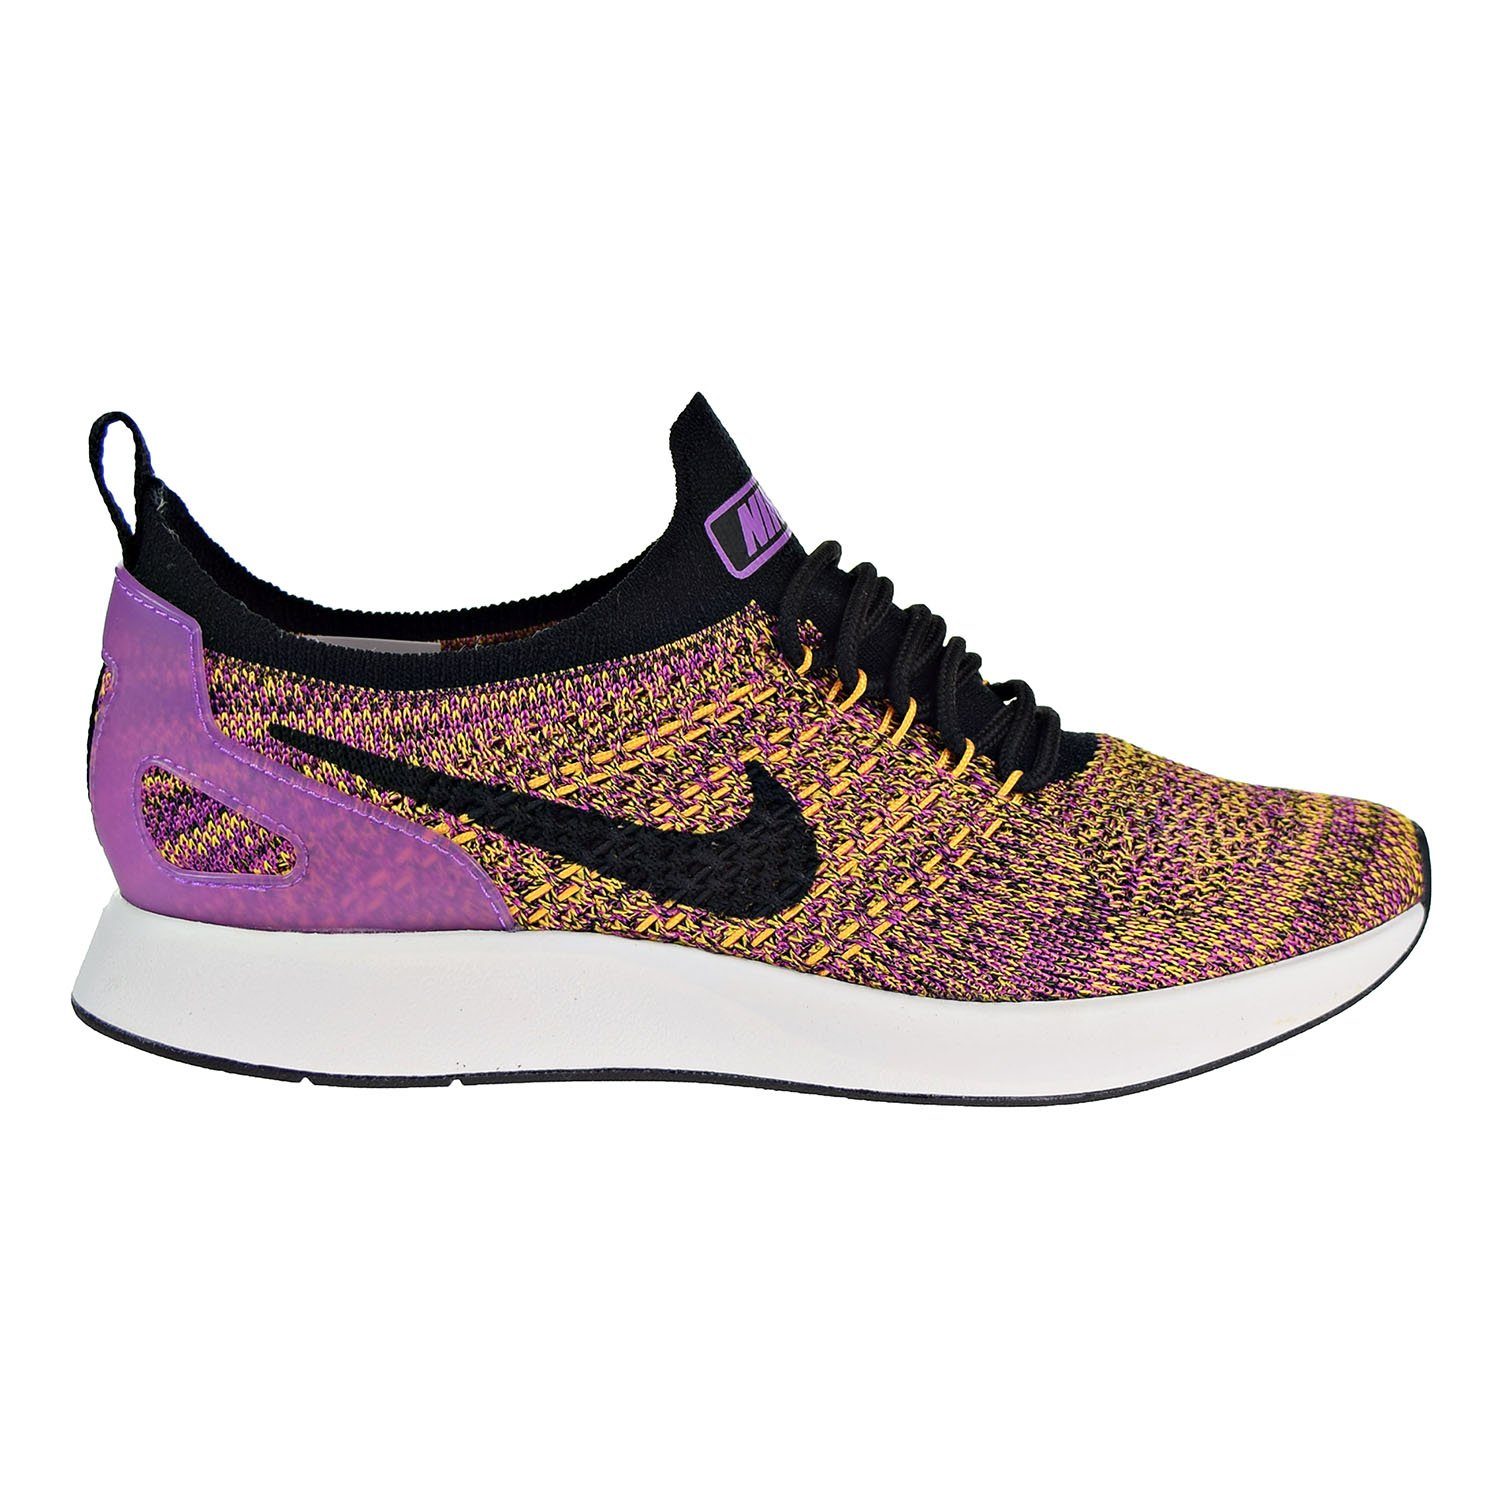 acfc6e4b3c67 Galleon - NIKE Air Zoom Mariah FK Racer Womens Running Shoes (10 B(M) US)